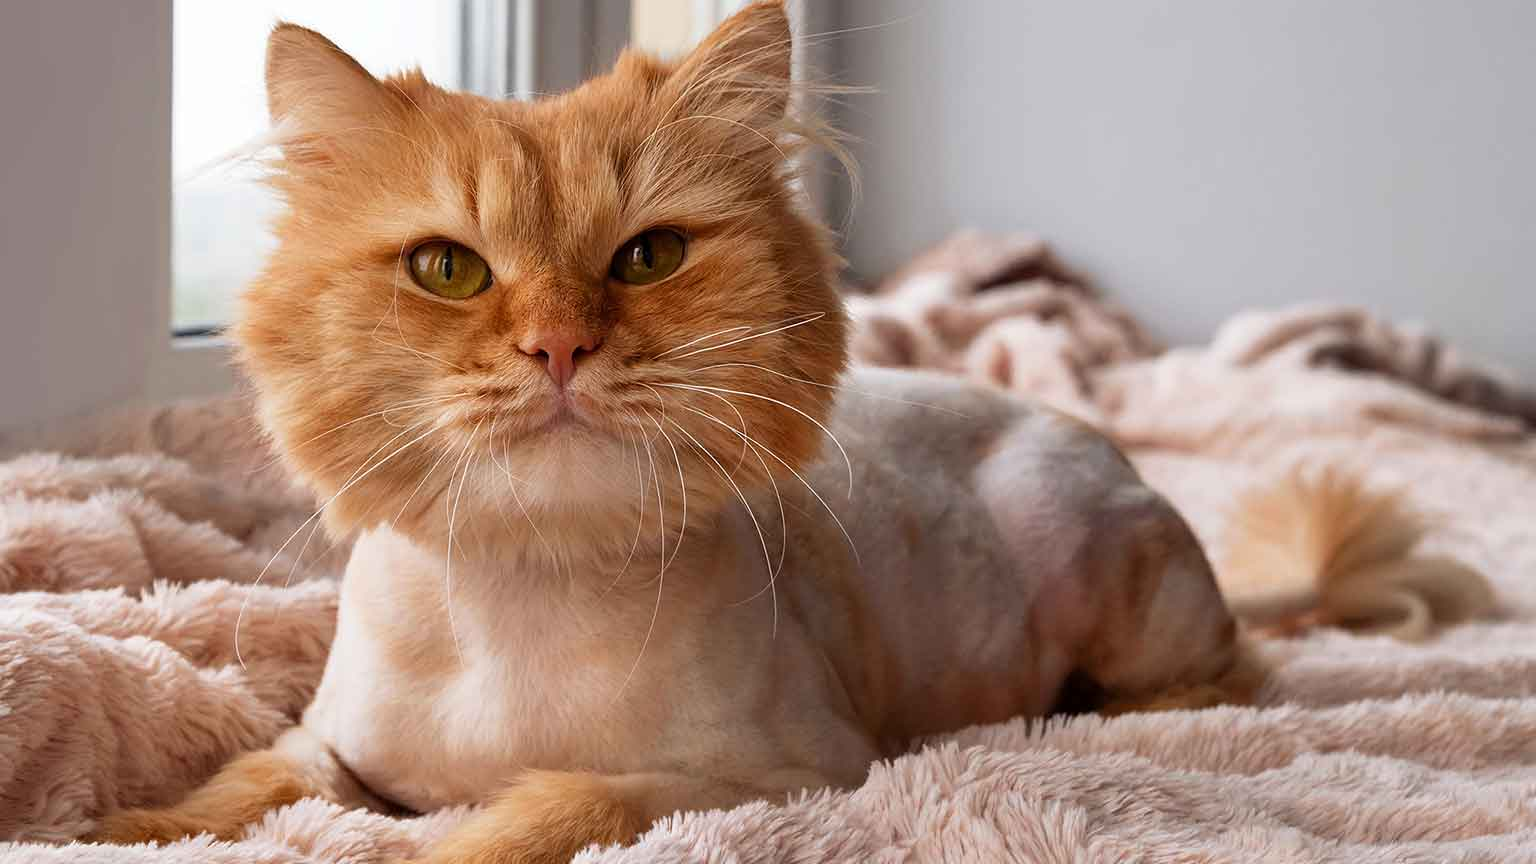 Lion Cut Cat - Fun And Practical Grooming Technique, Or Big Mistake?